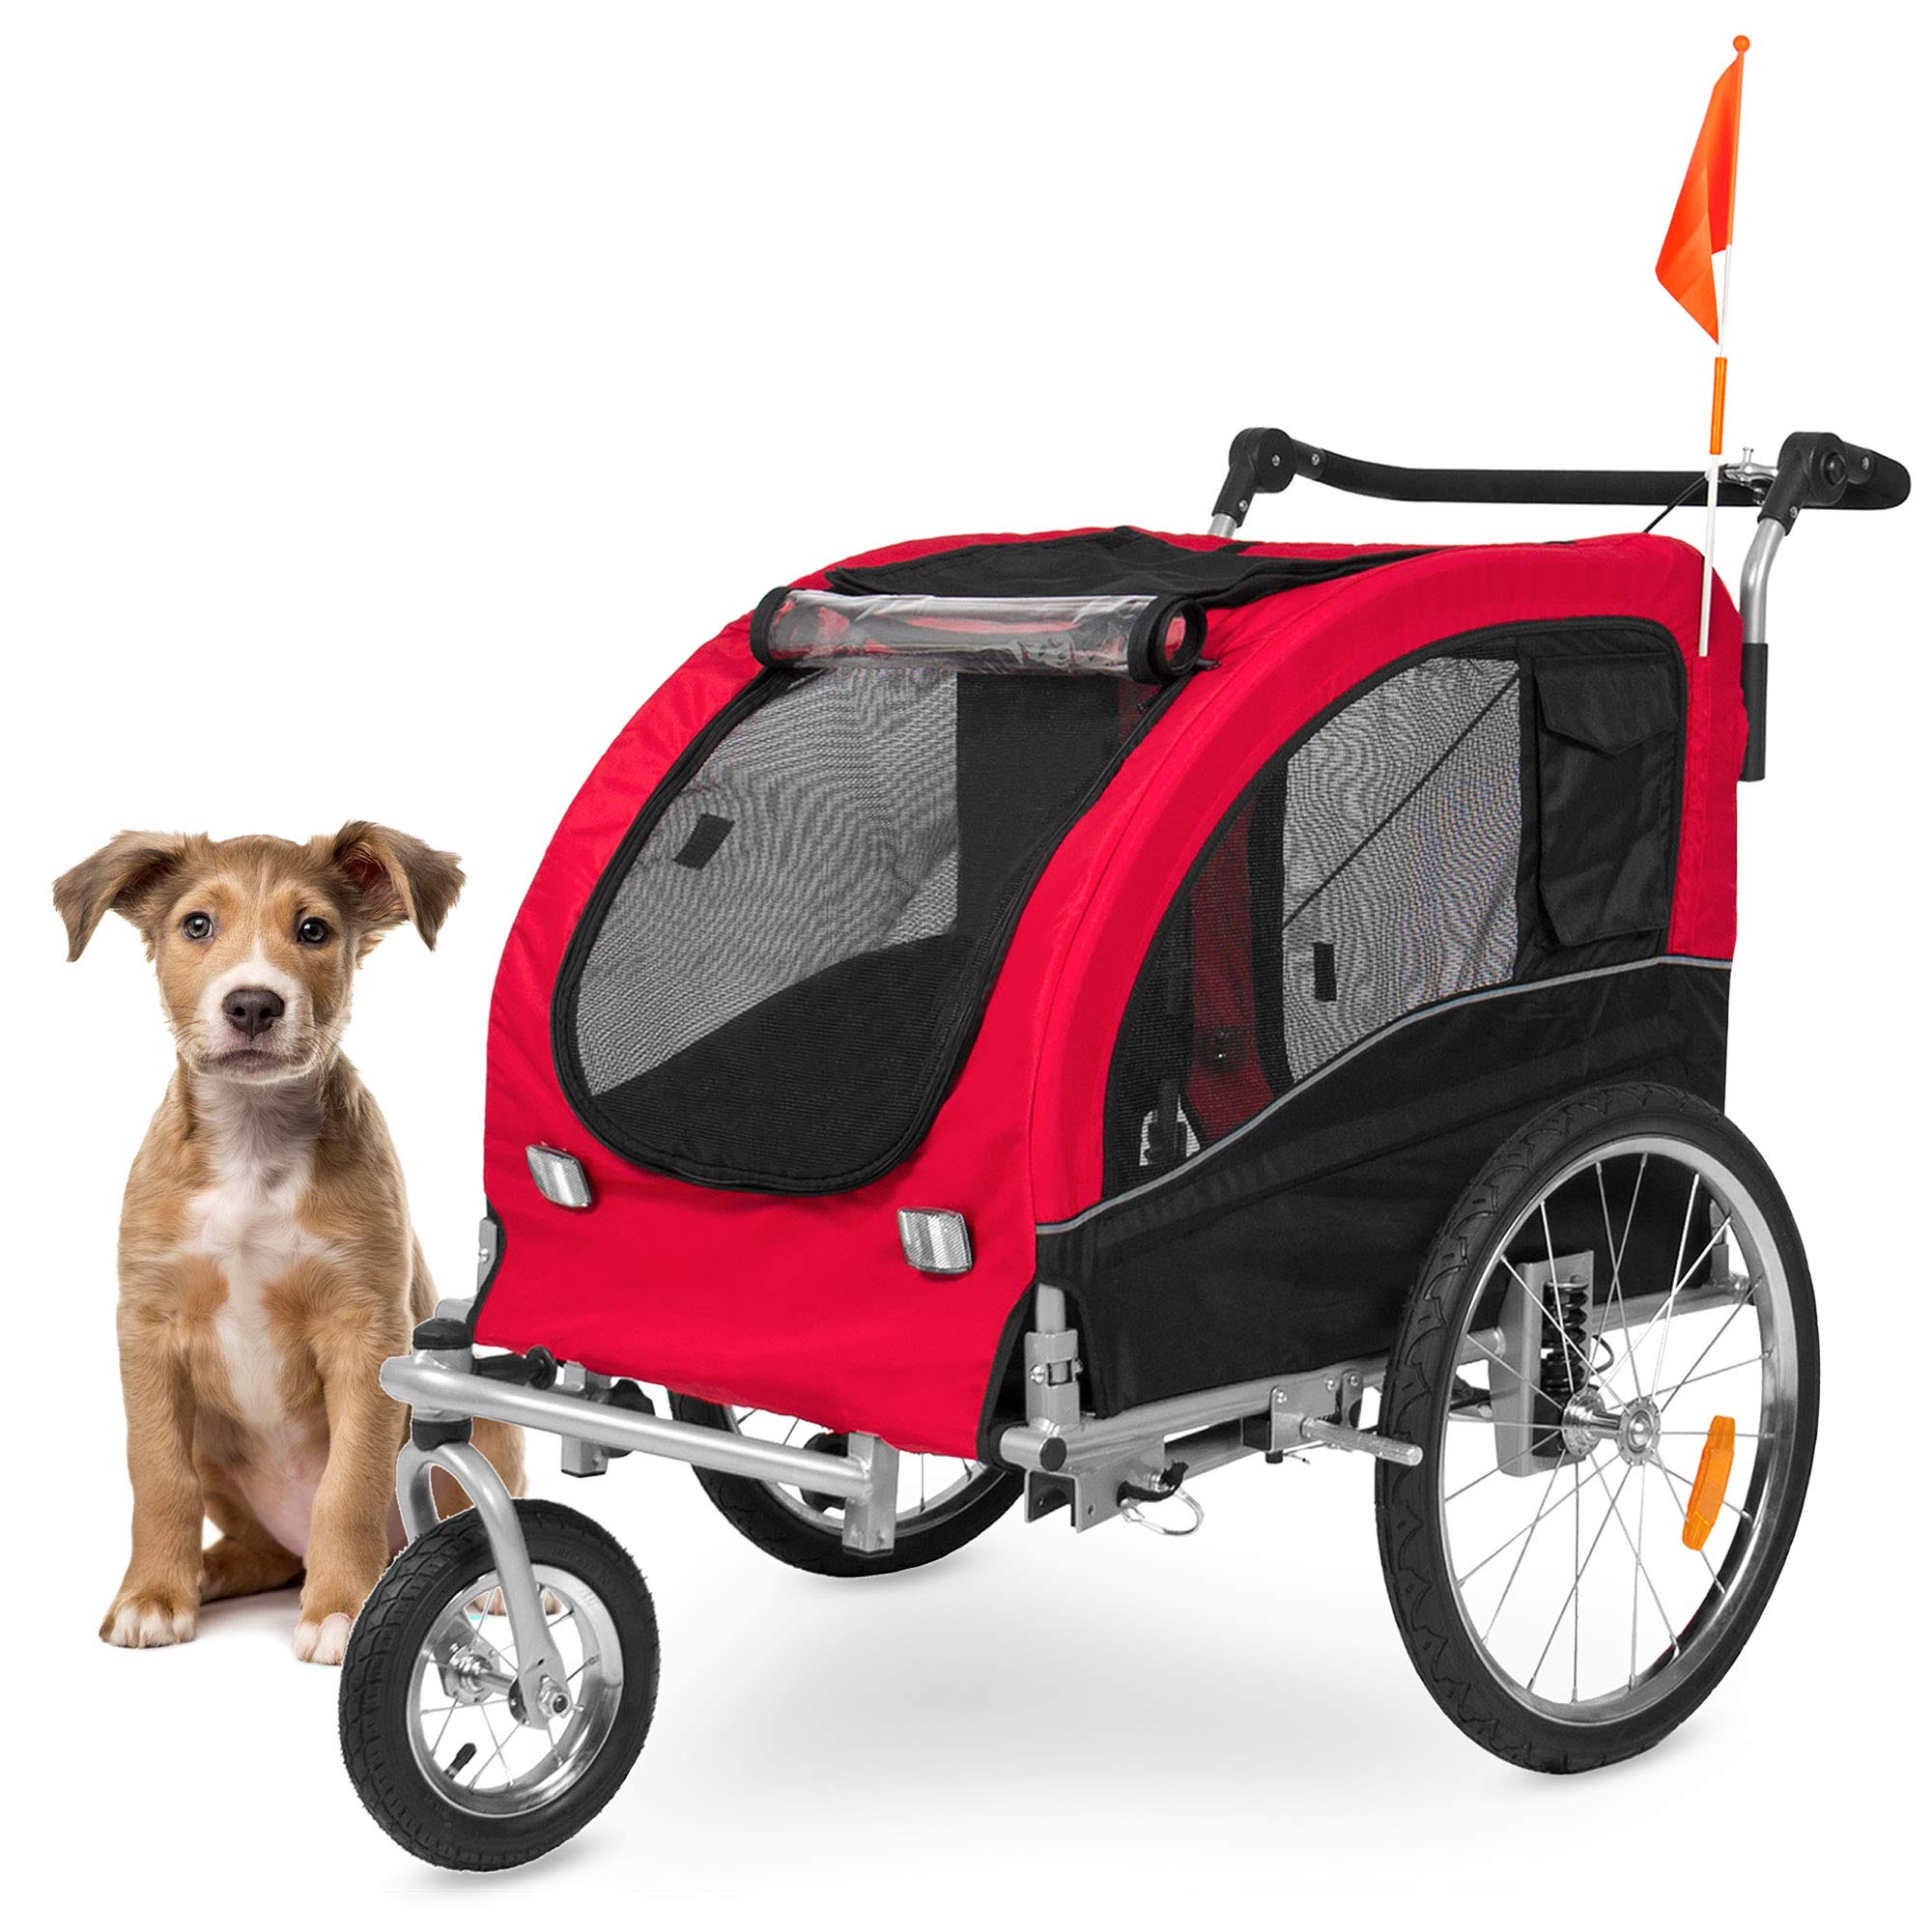 Best Choice Products 2-in-1 Pet Stroller and Trailer, Red, with Hitch, Suspension, Safety Flag, and Reflectors by Best Choice Products